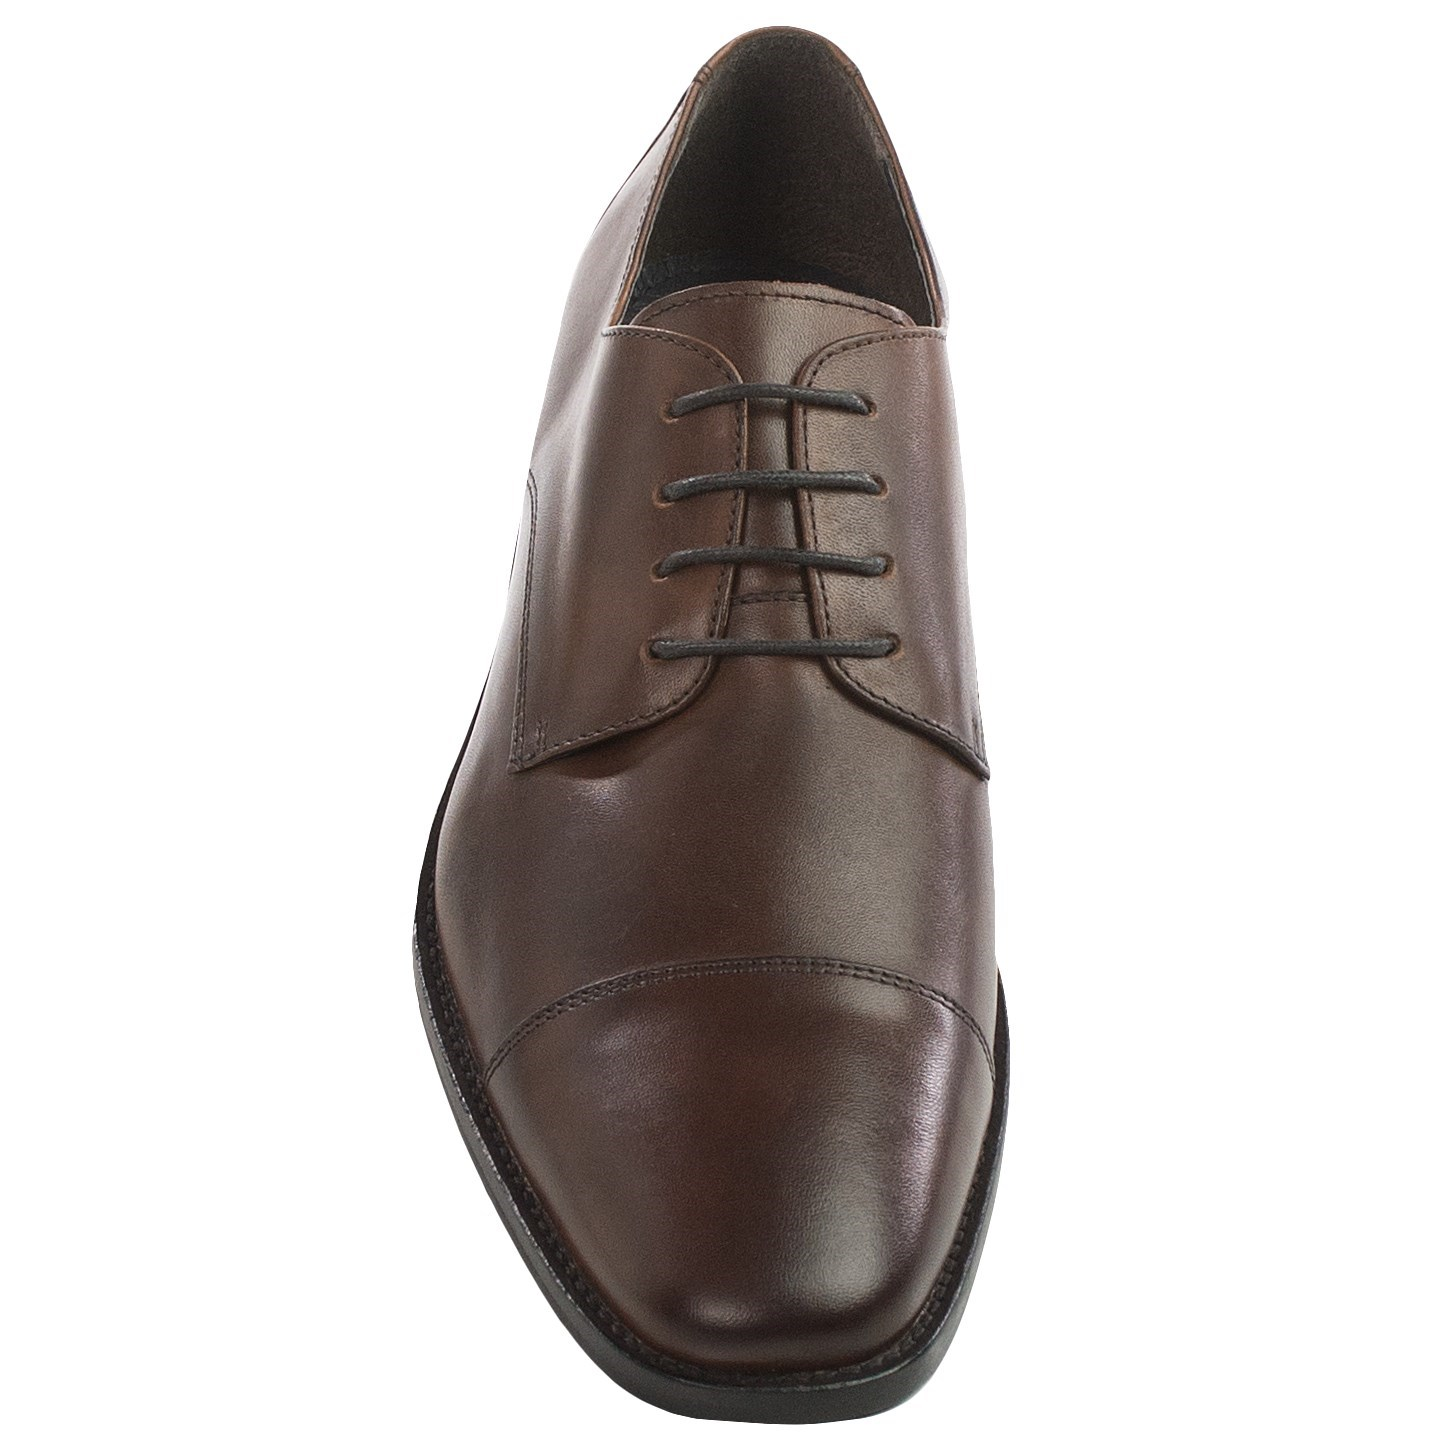 Gordon Rush Oxford Shoes Review